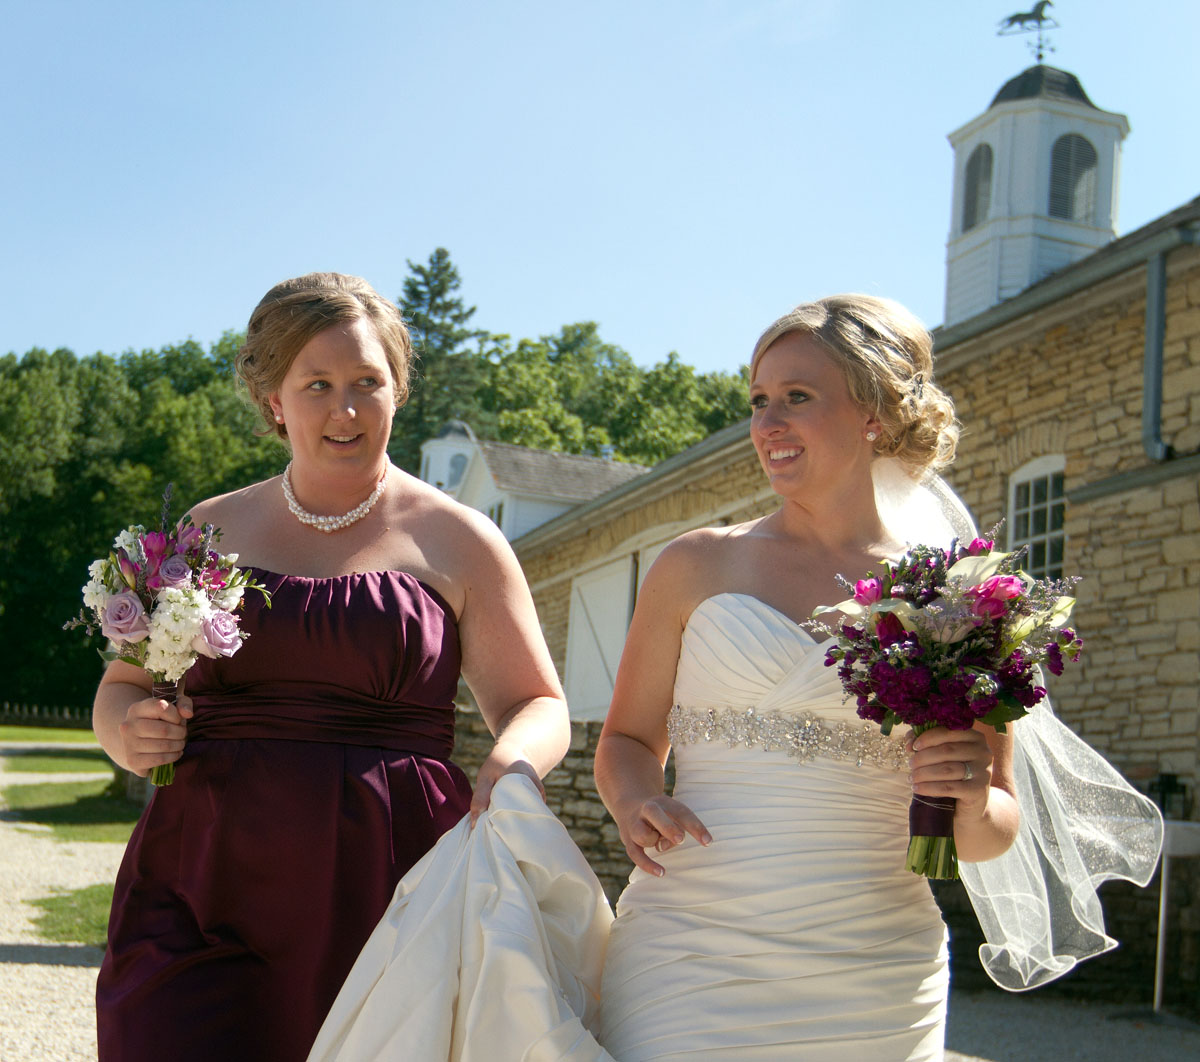 Kari and Beth walk to the ceremony area at Mayowood Stone Barn.